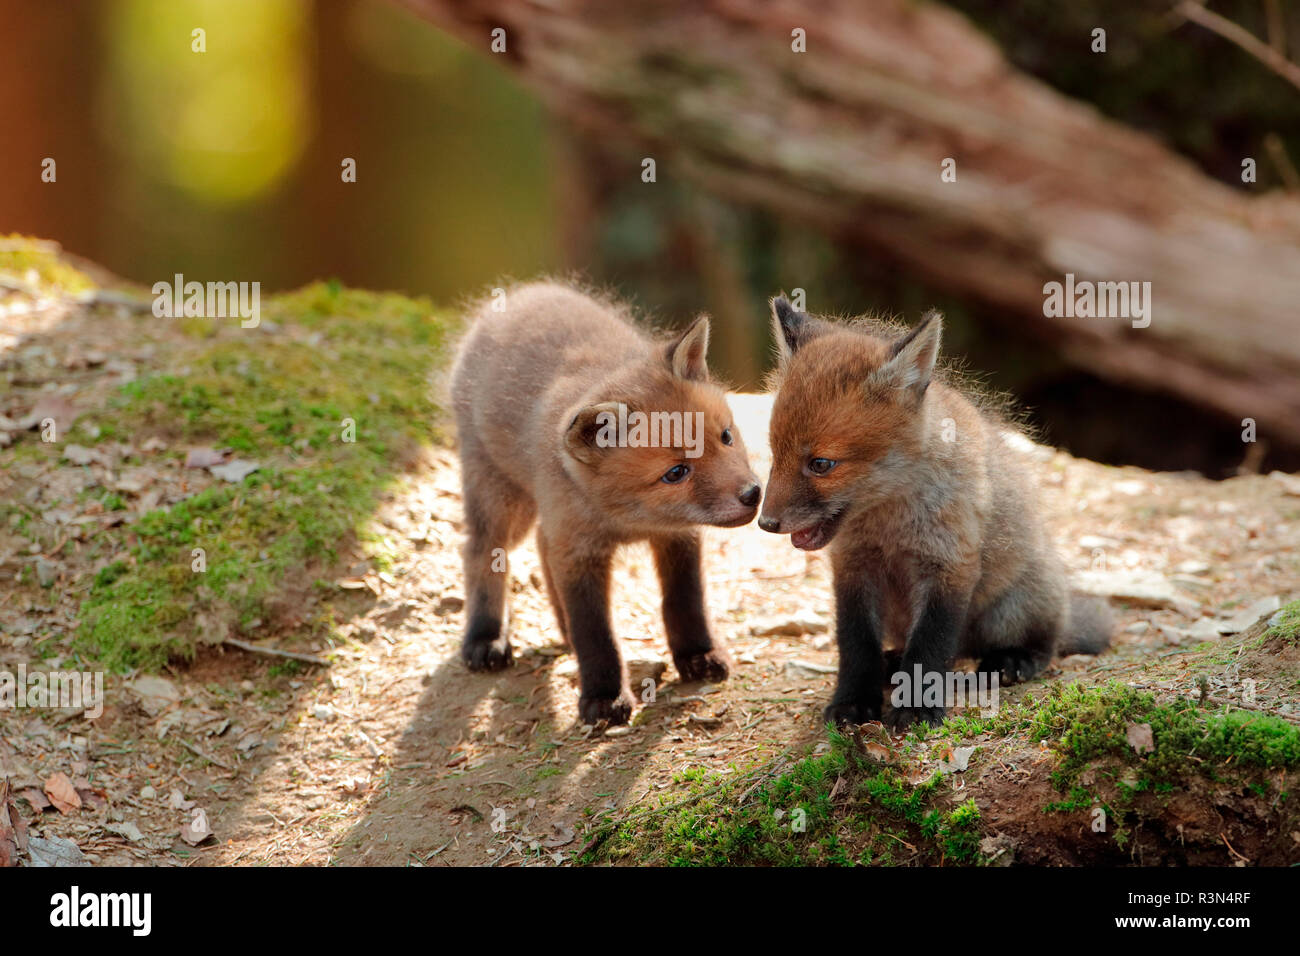 Red fox (Vulpes vulpes), Young, Ardennes, Belgium - Stock Image